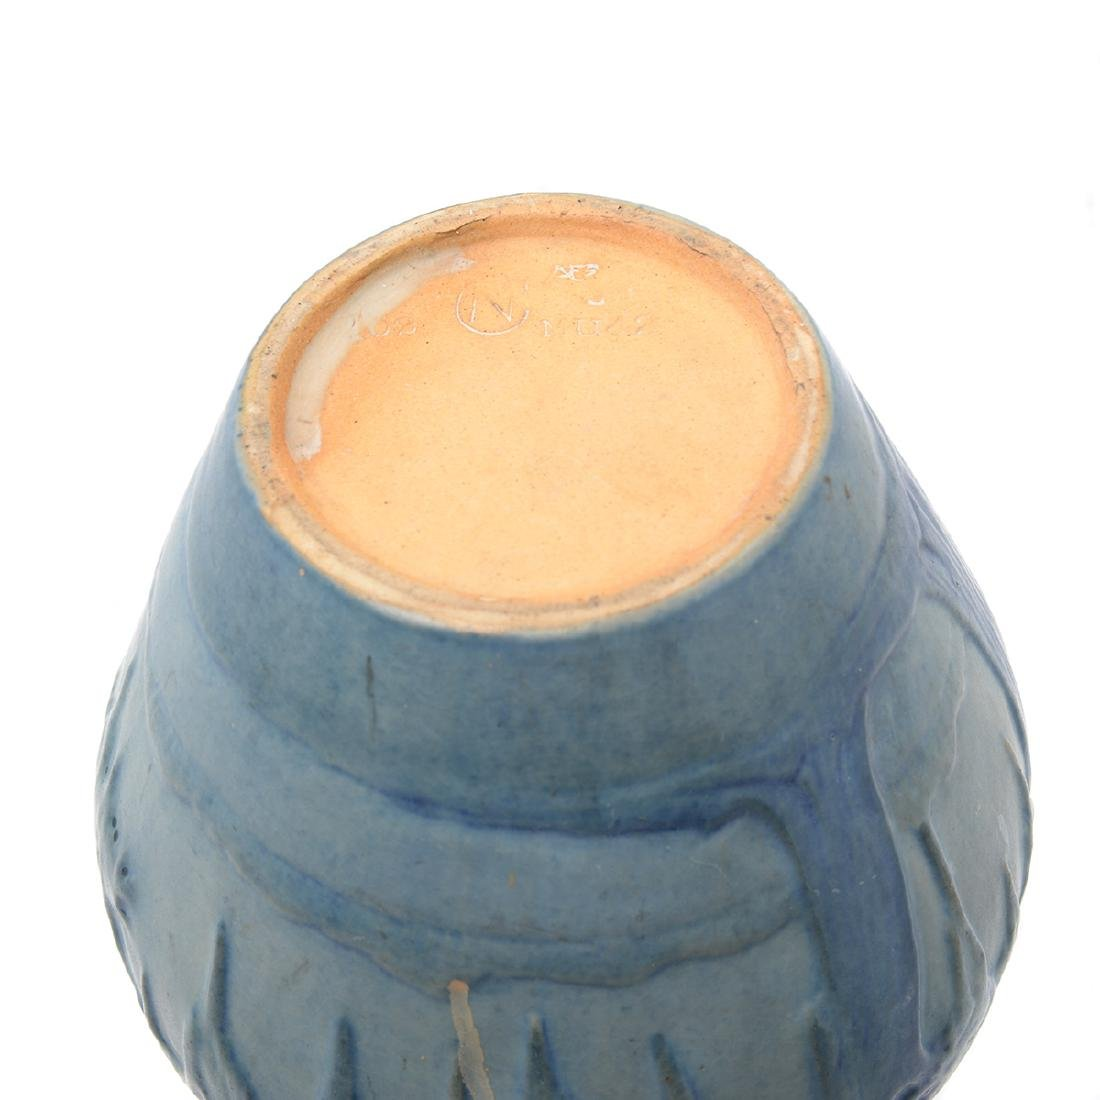 Newcomb College Moonlight Pottery Vase Possibly (JH - 7